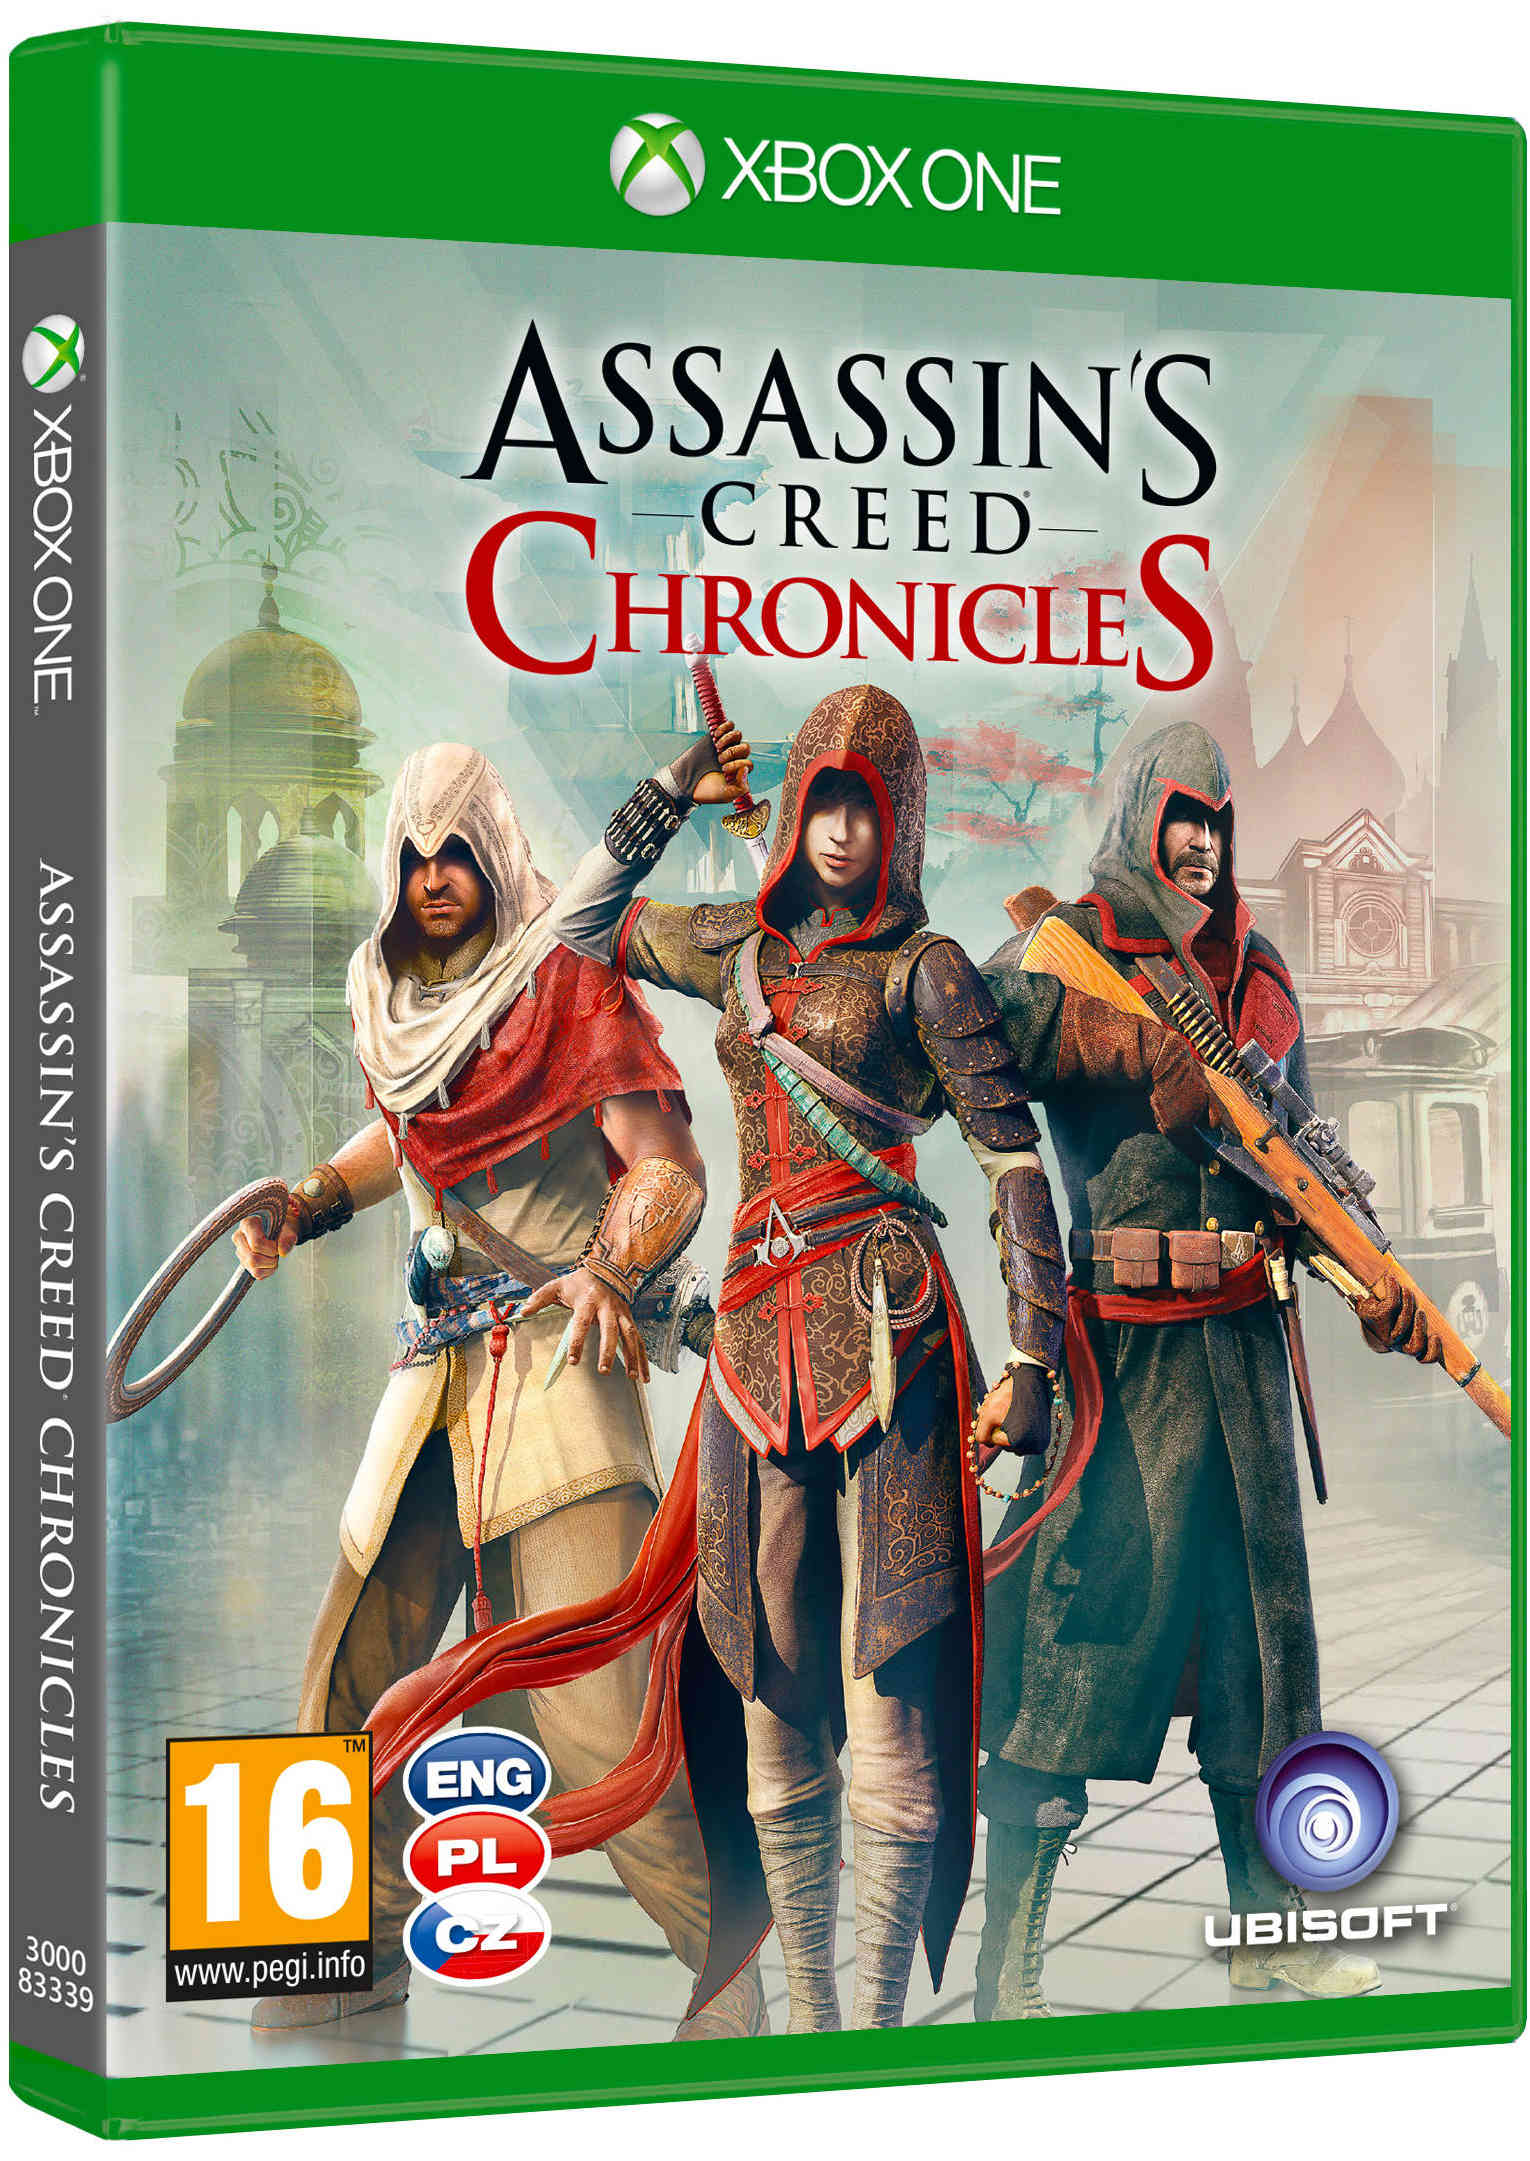 XONE - Assassins Creed Chronicles